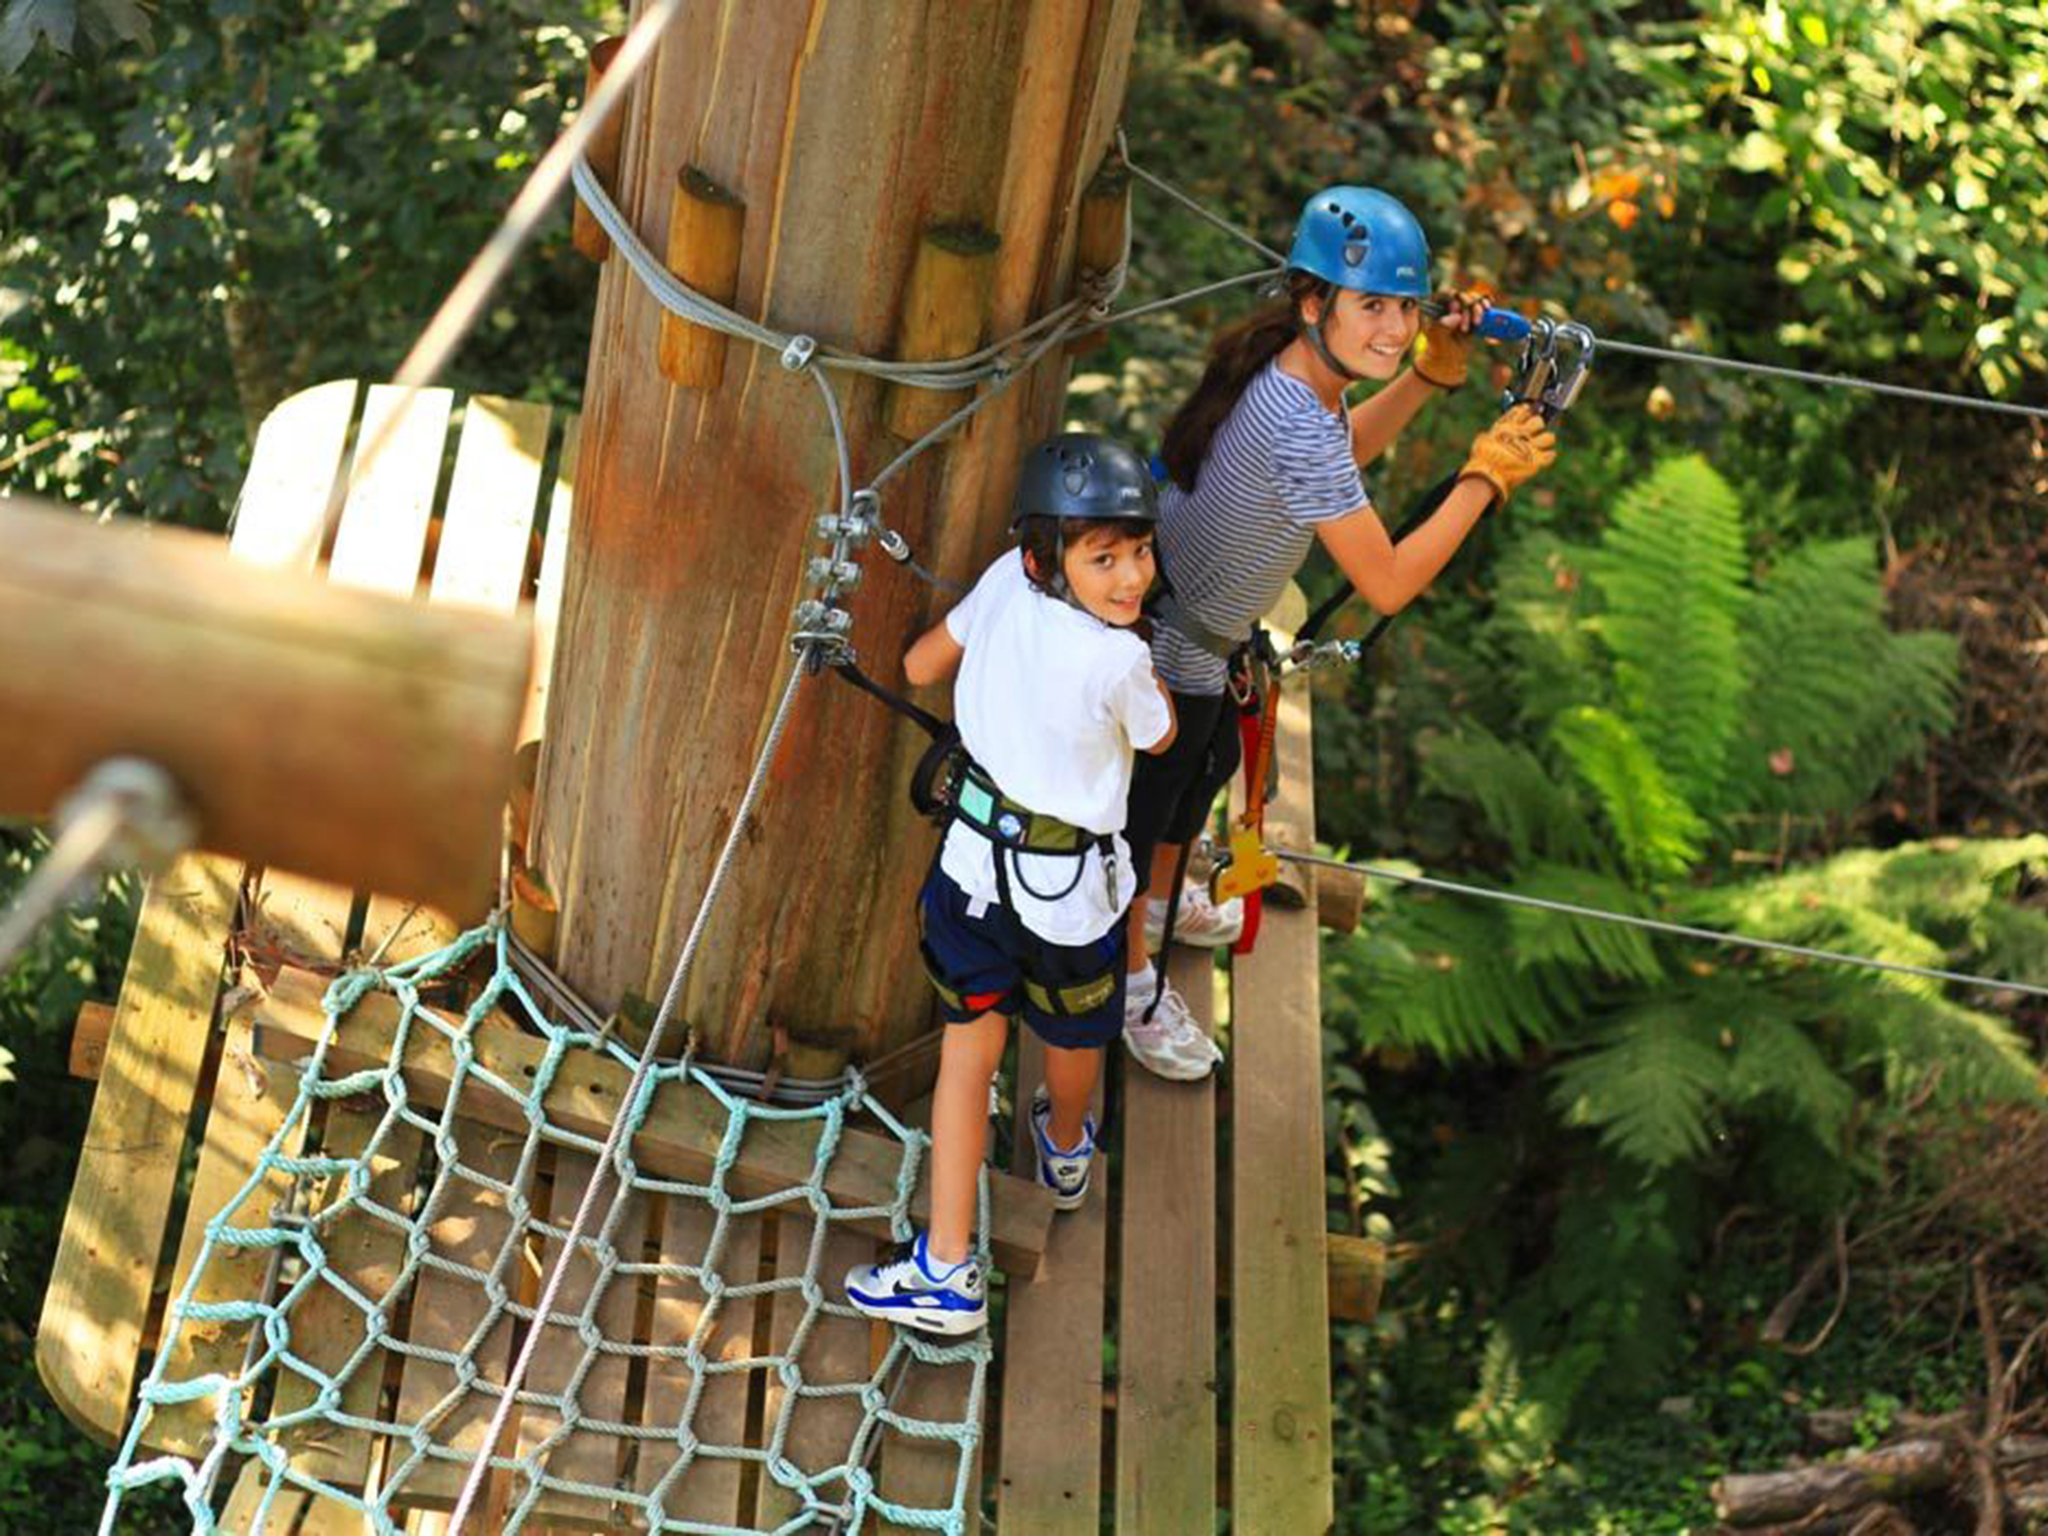 Get your Tarzan on at the Trees Adventure Park